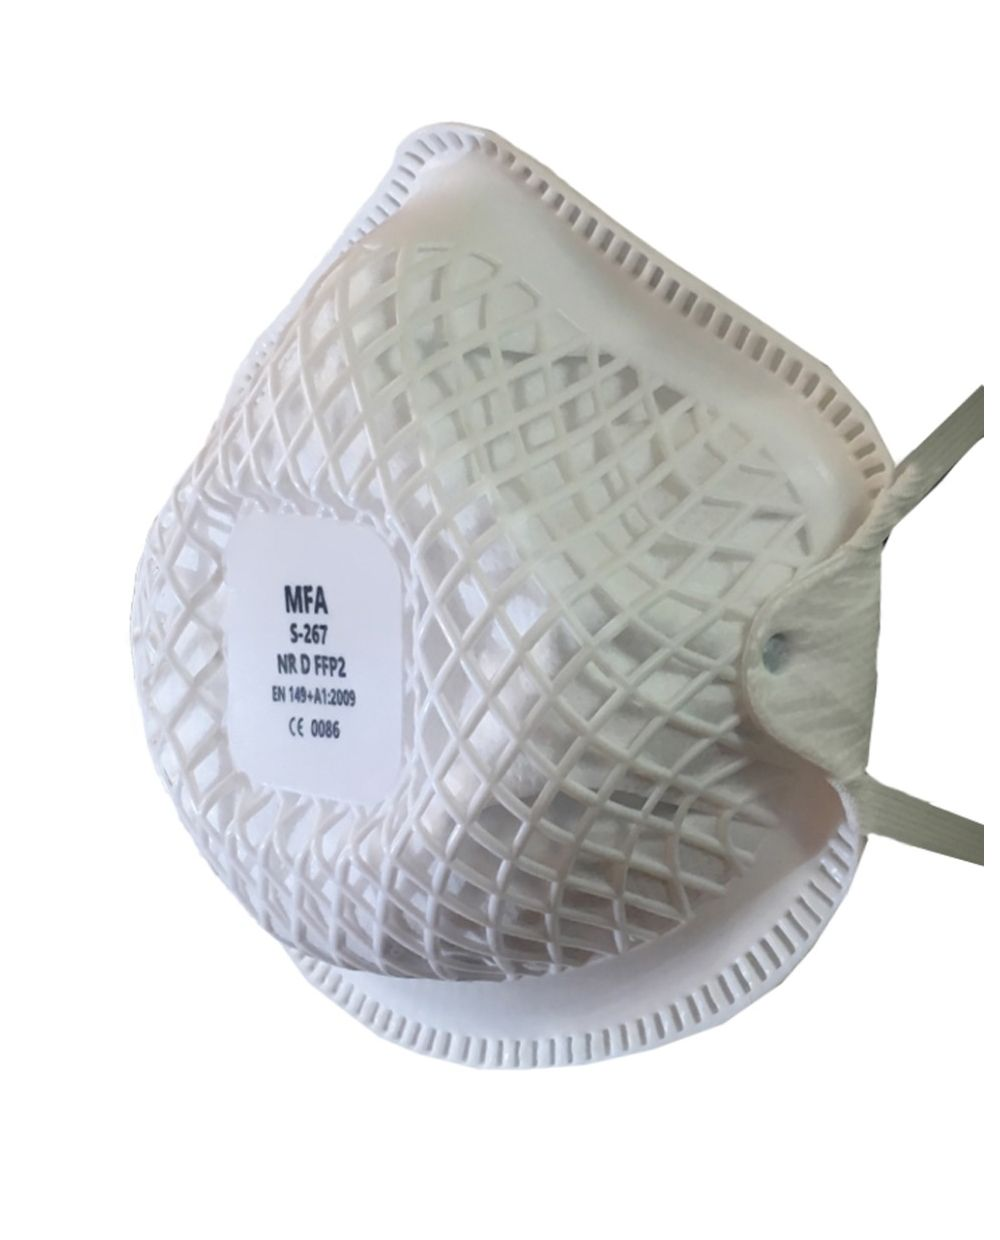 FFP2 Dust Masks - S267